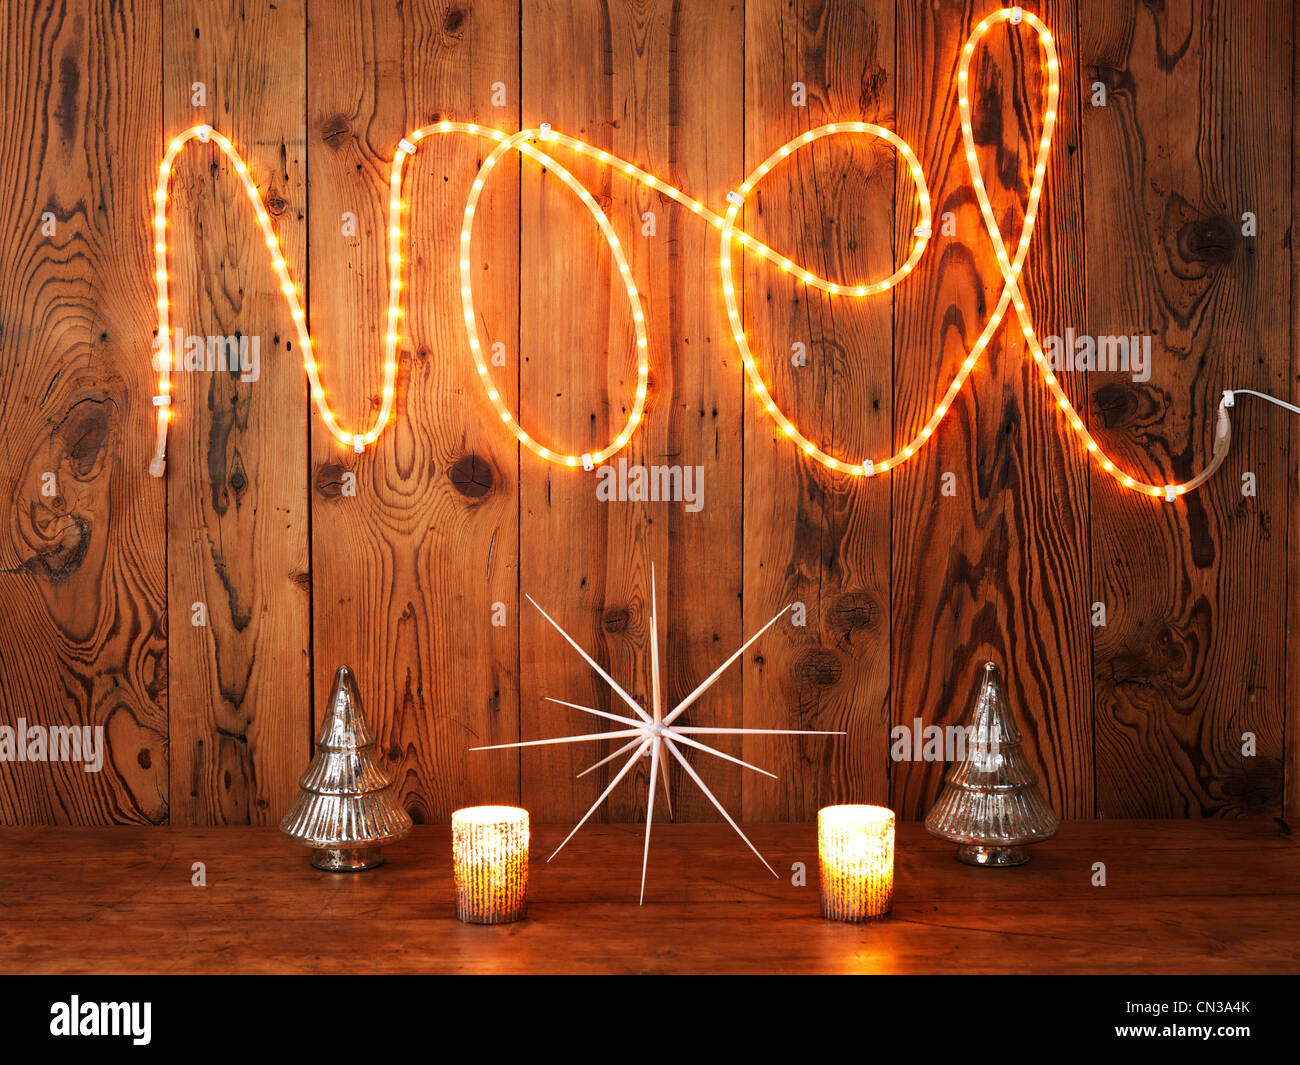 Christmas lights spelling Noel against wood panelling - Stock Image